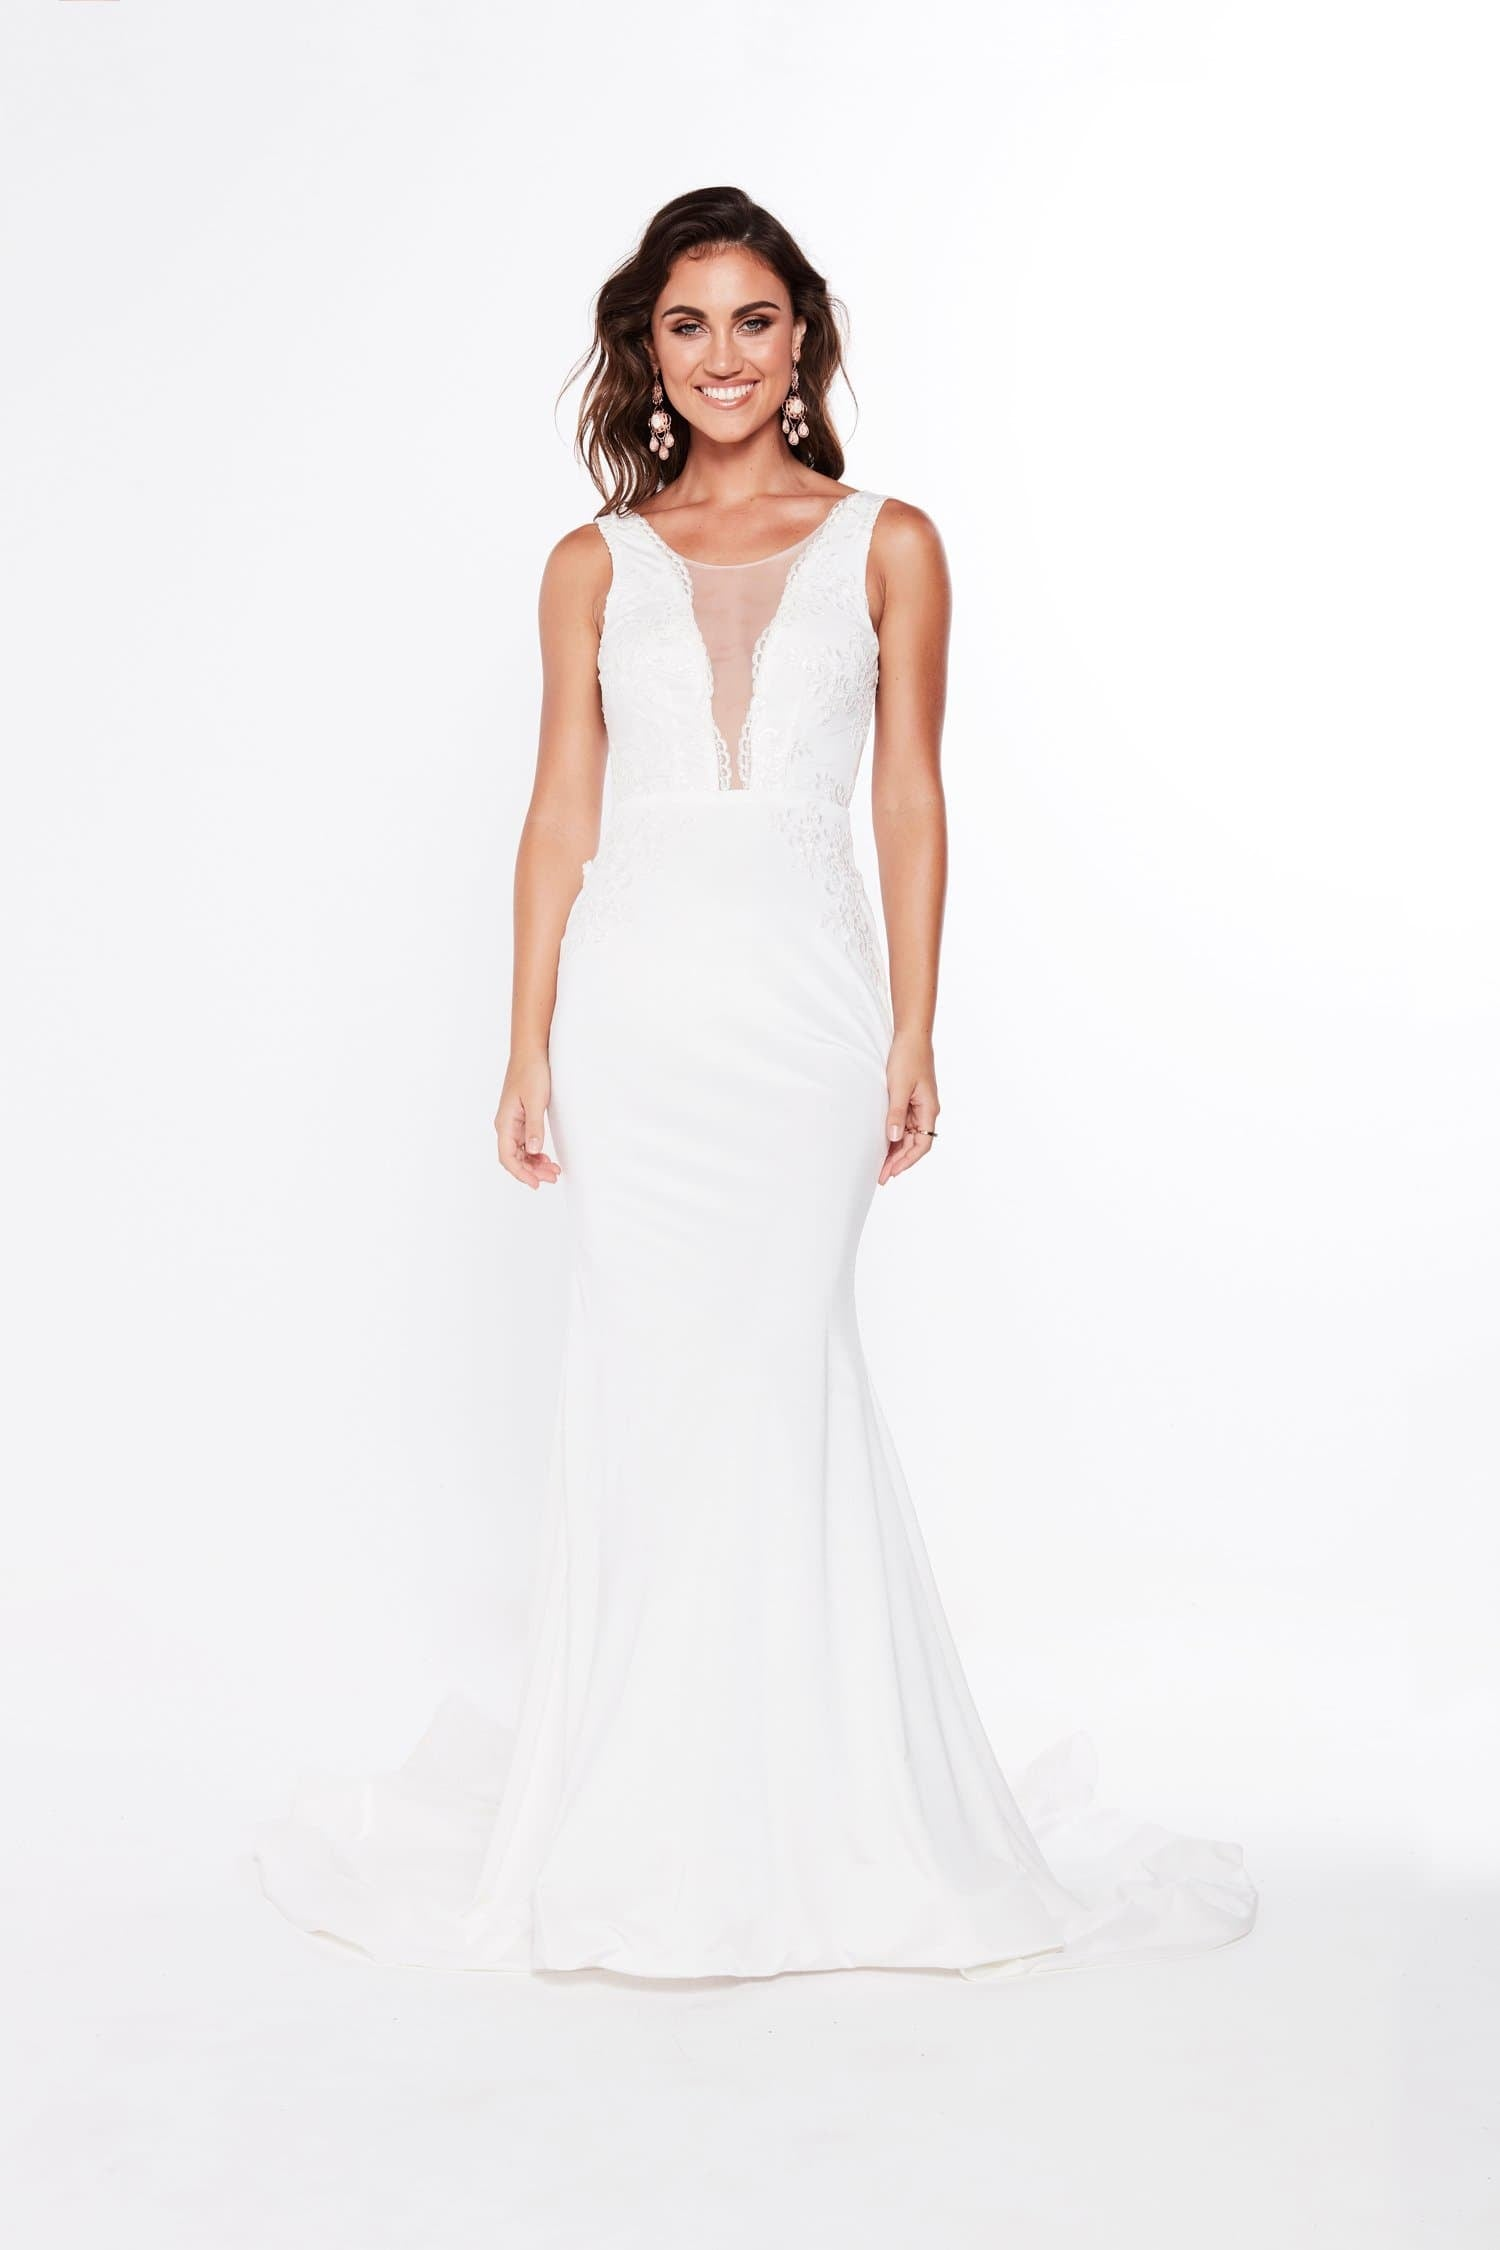 A&N Juana - White Lace Jersey Bridal Gown with Plunge neck & Low Back